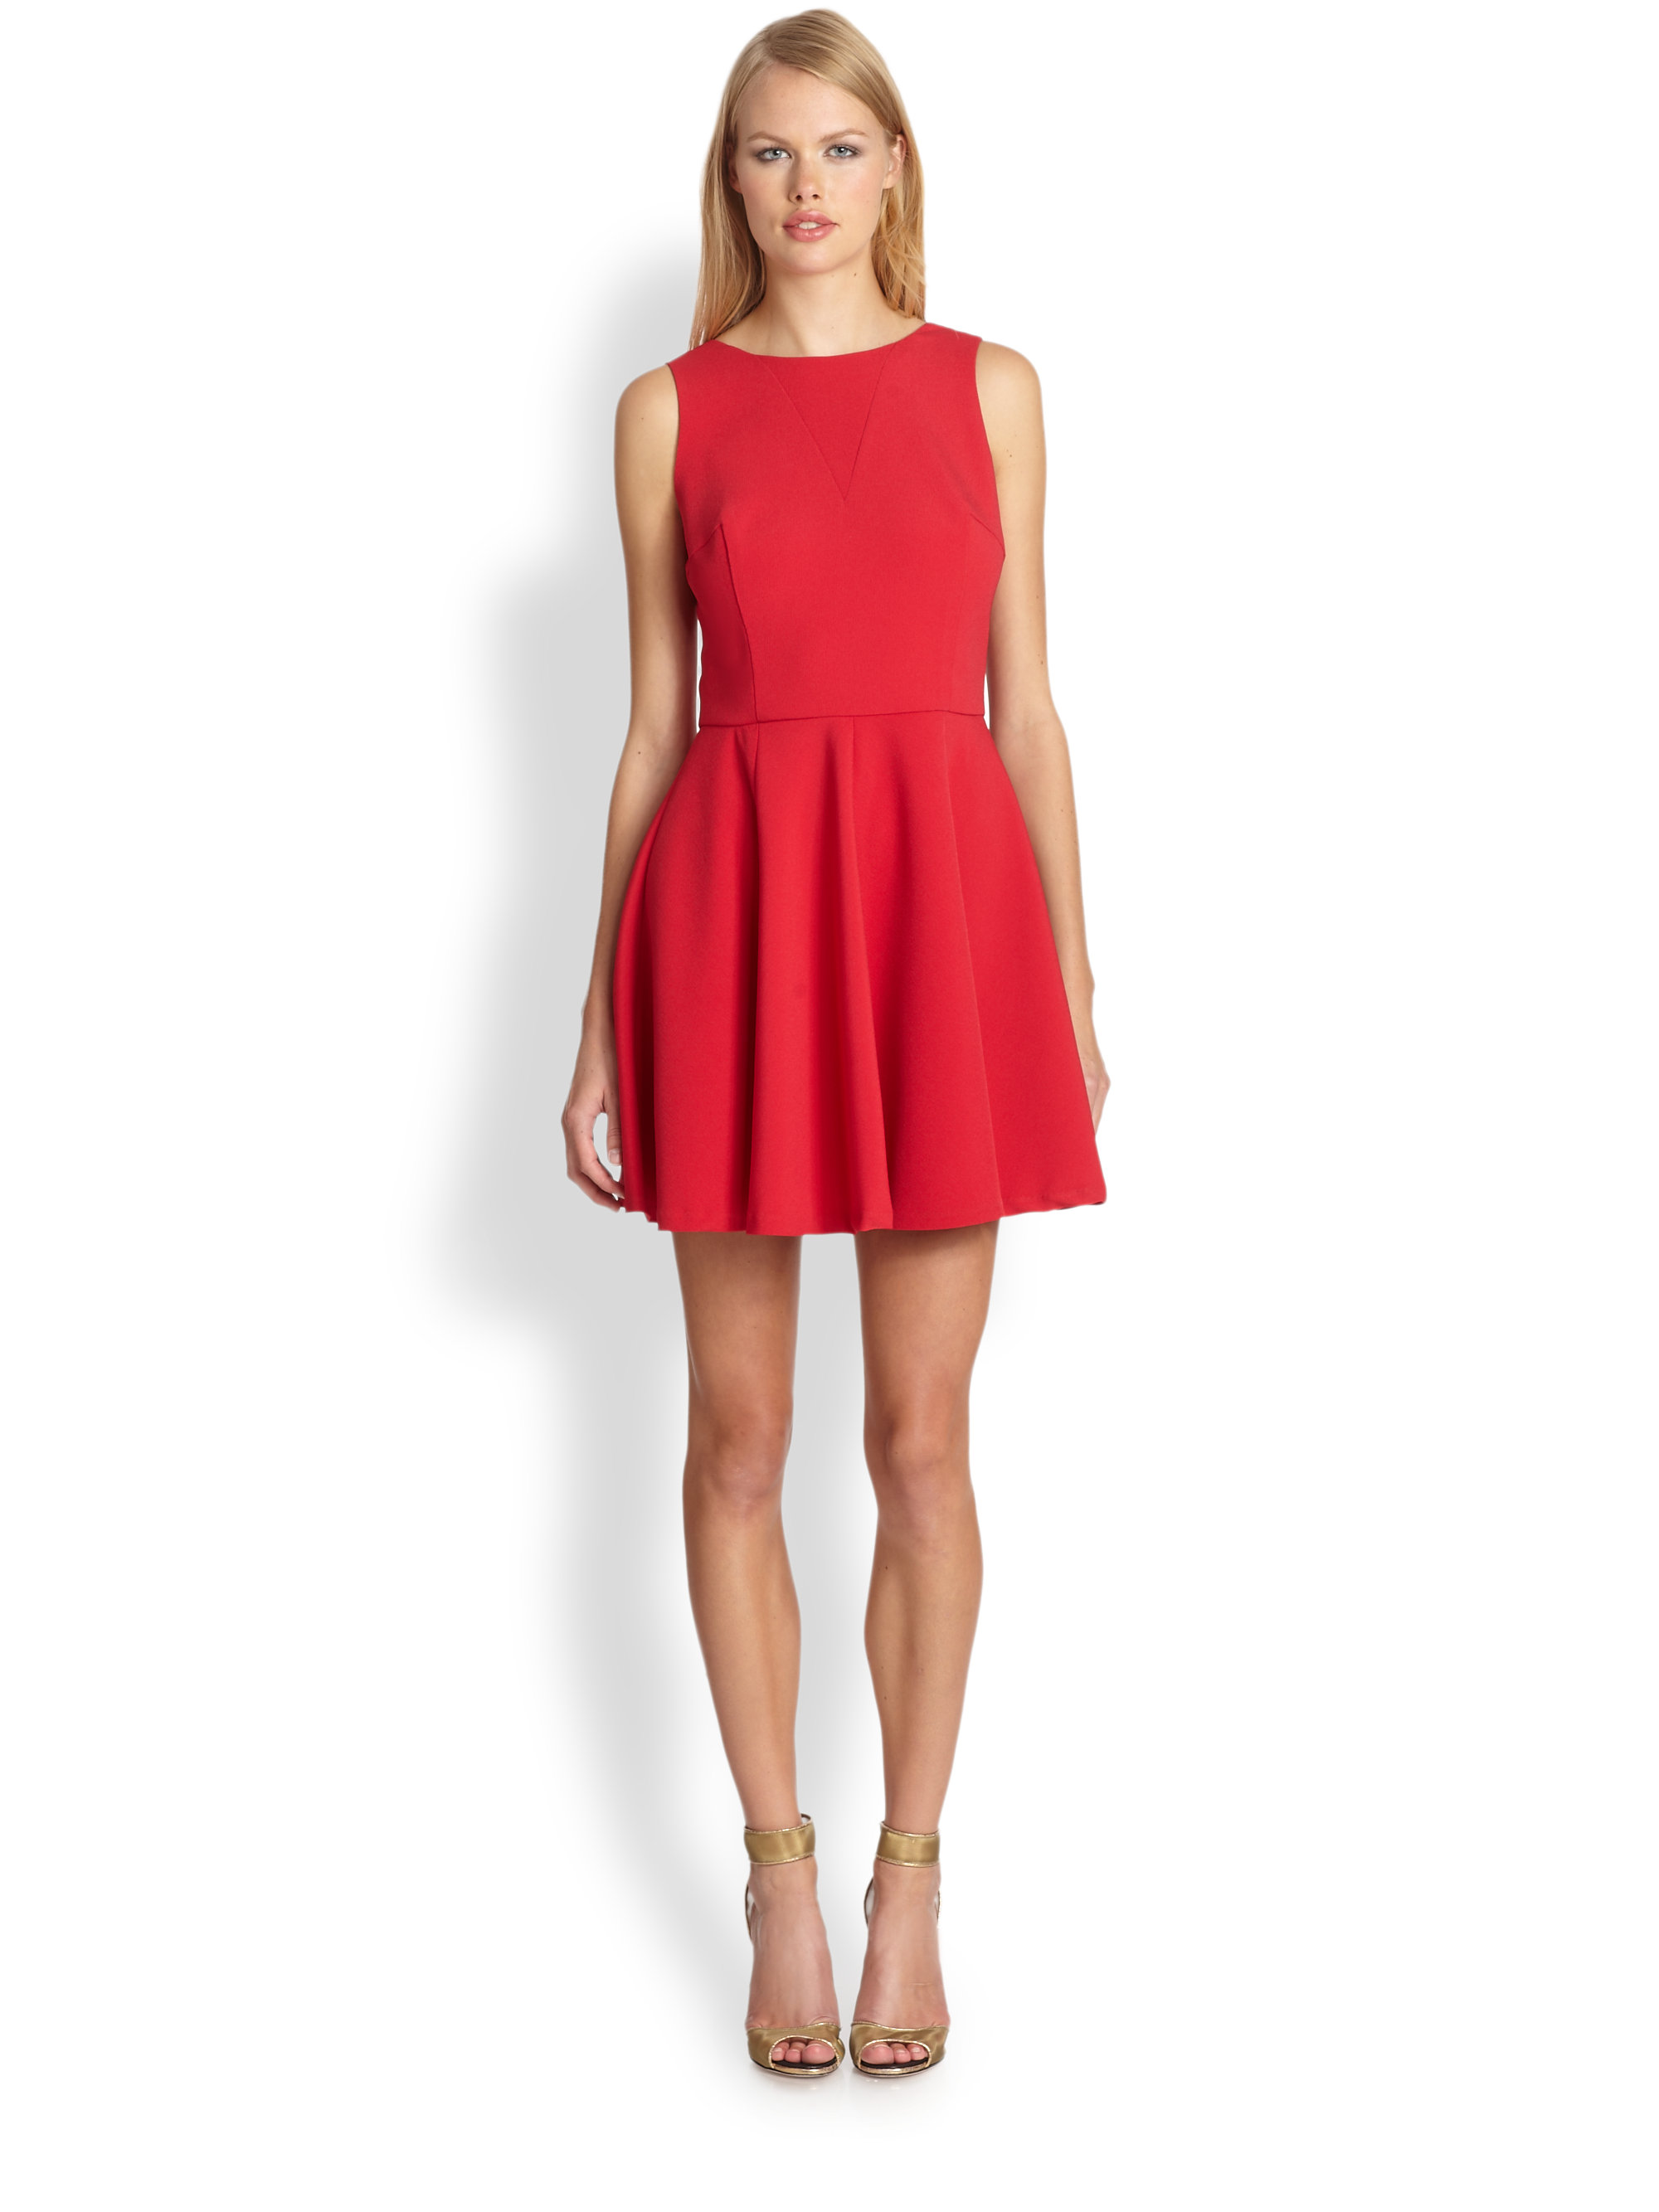 Nicole Miller Satin Crepe Fit And Flare Dress In Red Lyst